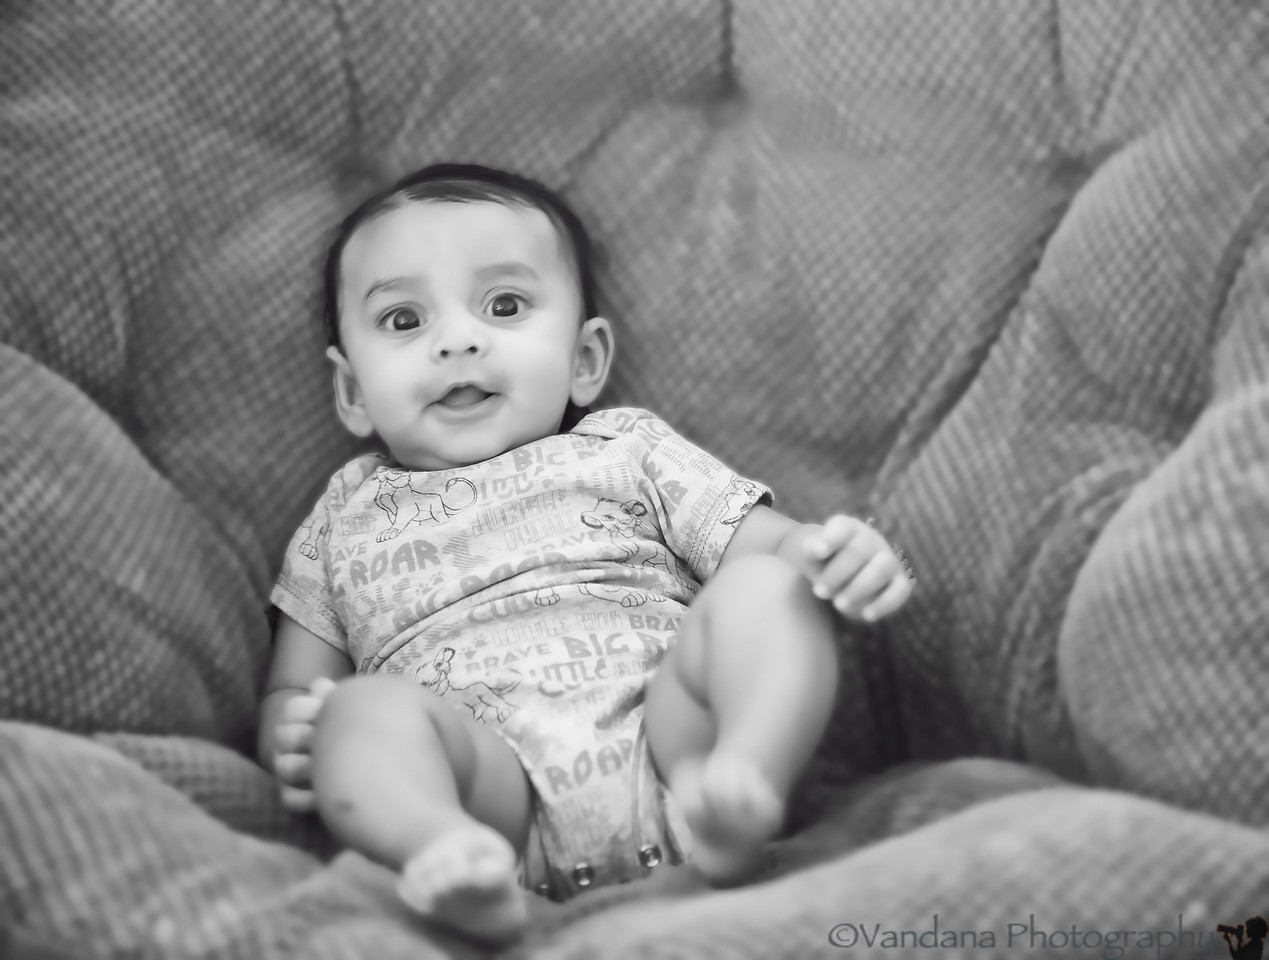 September 10, 2012 - Arjun relaxing